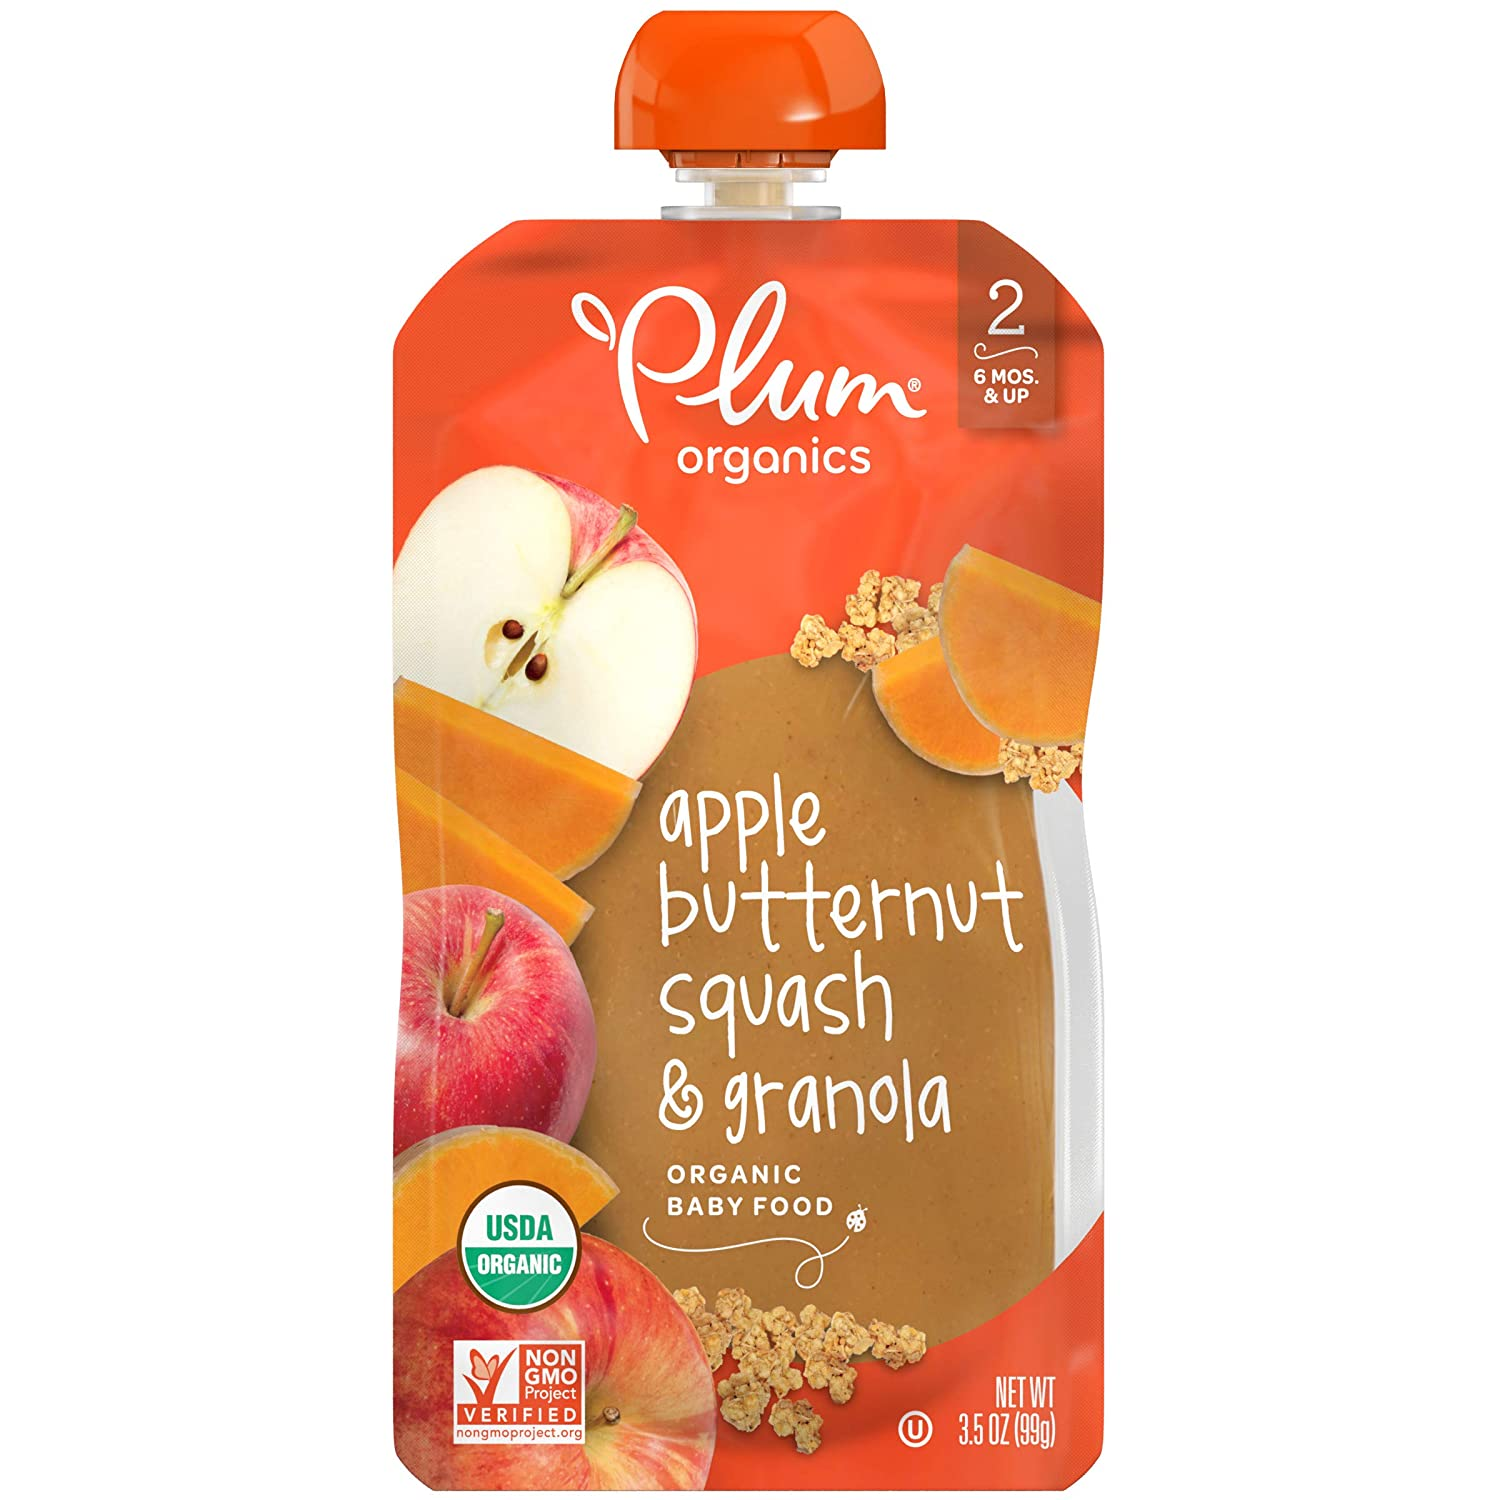 Plum Organics Stage 2 Organic Baby Food, Apple, Butternut Squash & Granola, 3.5 Ounce Pouch (Pack of 6)